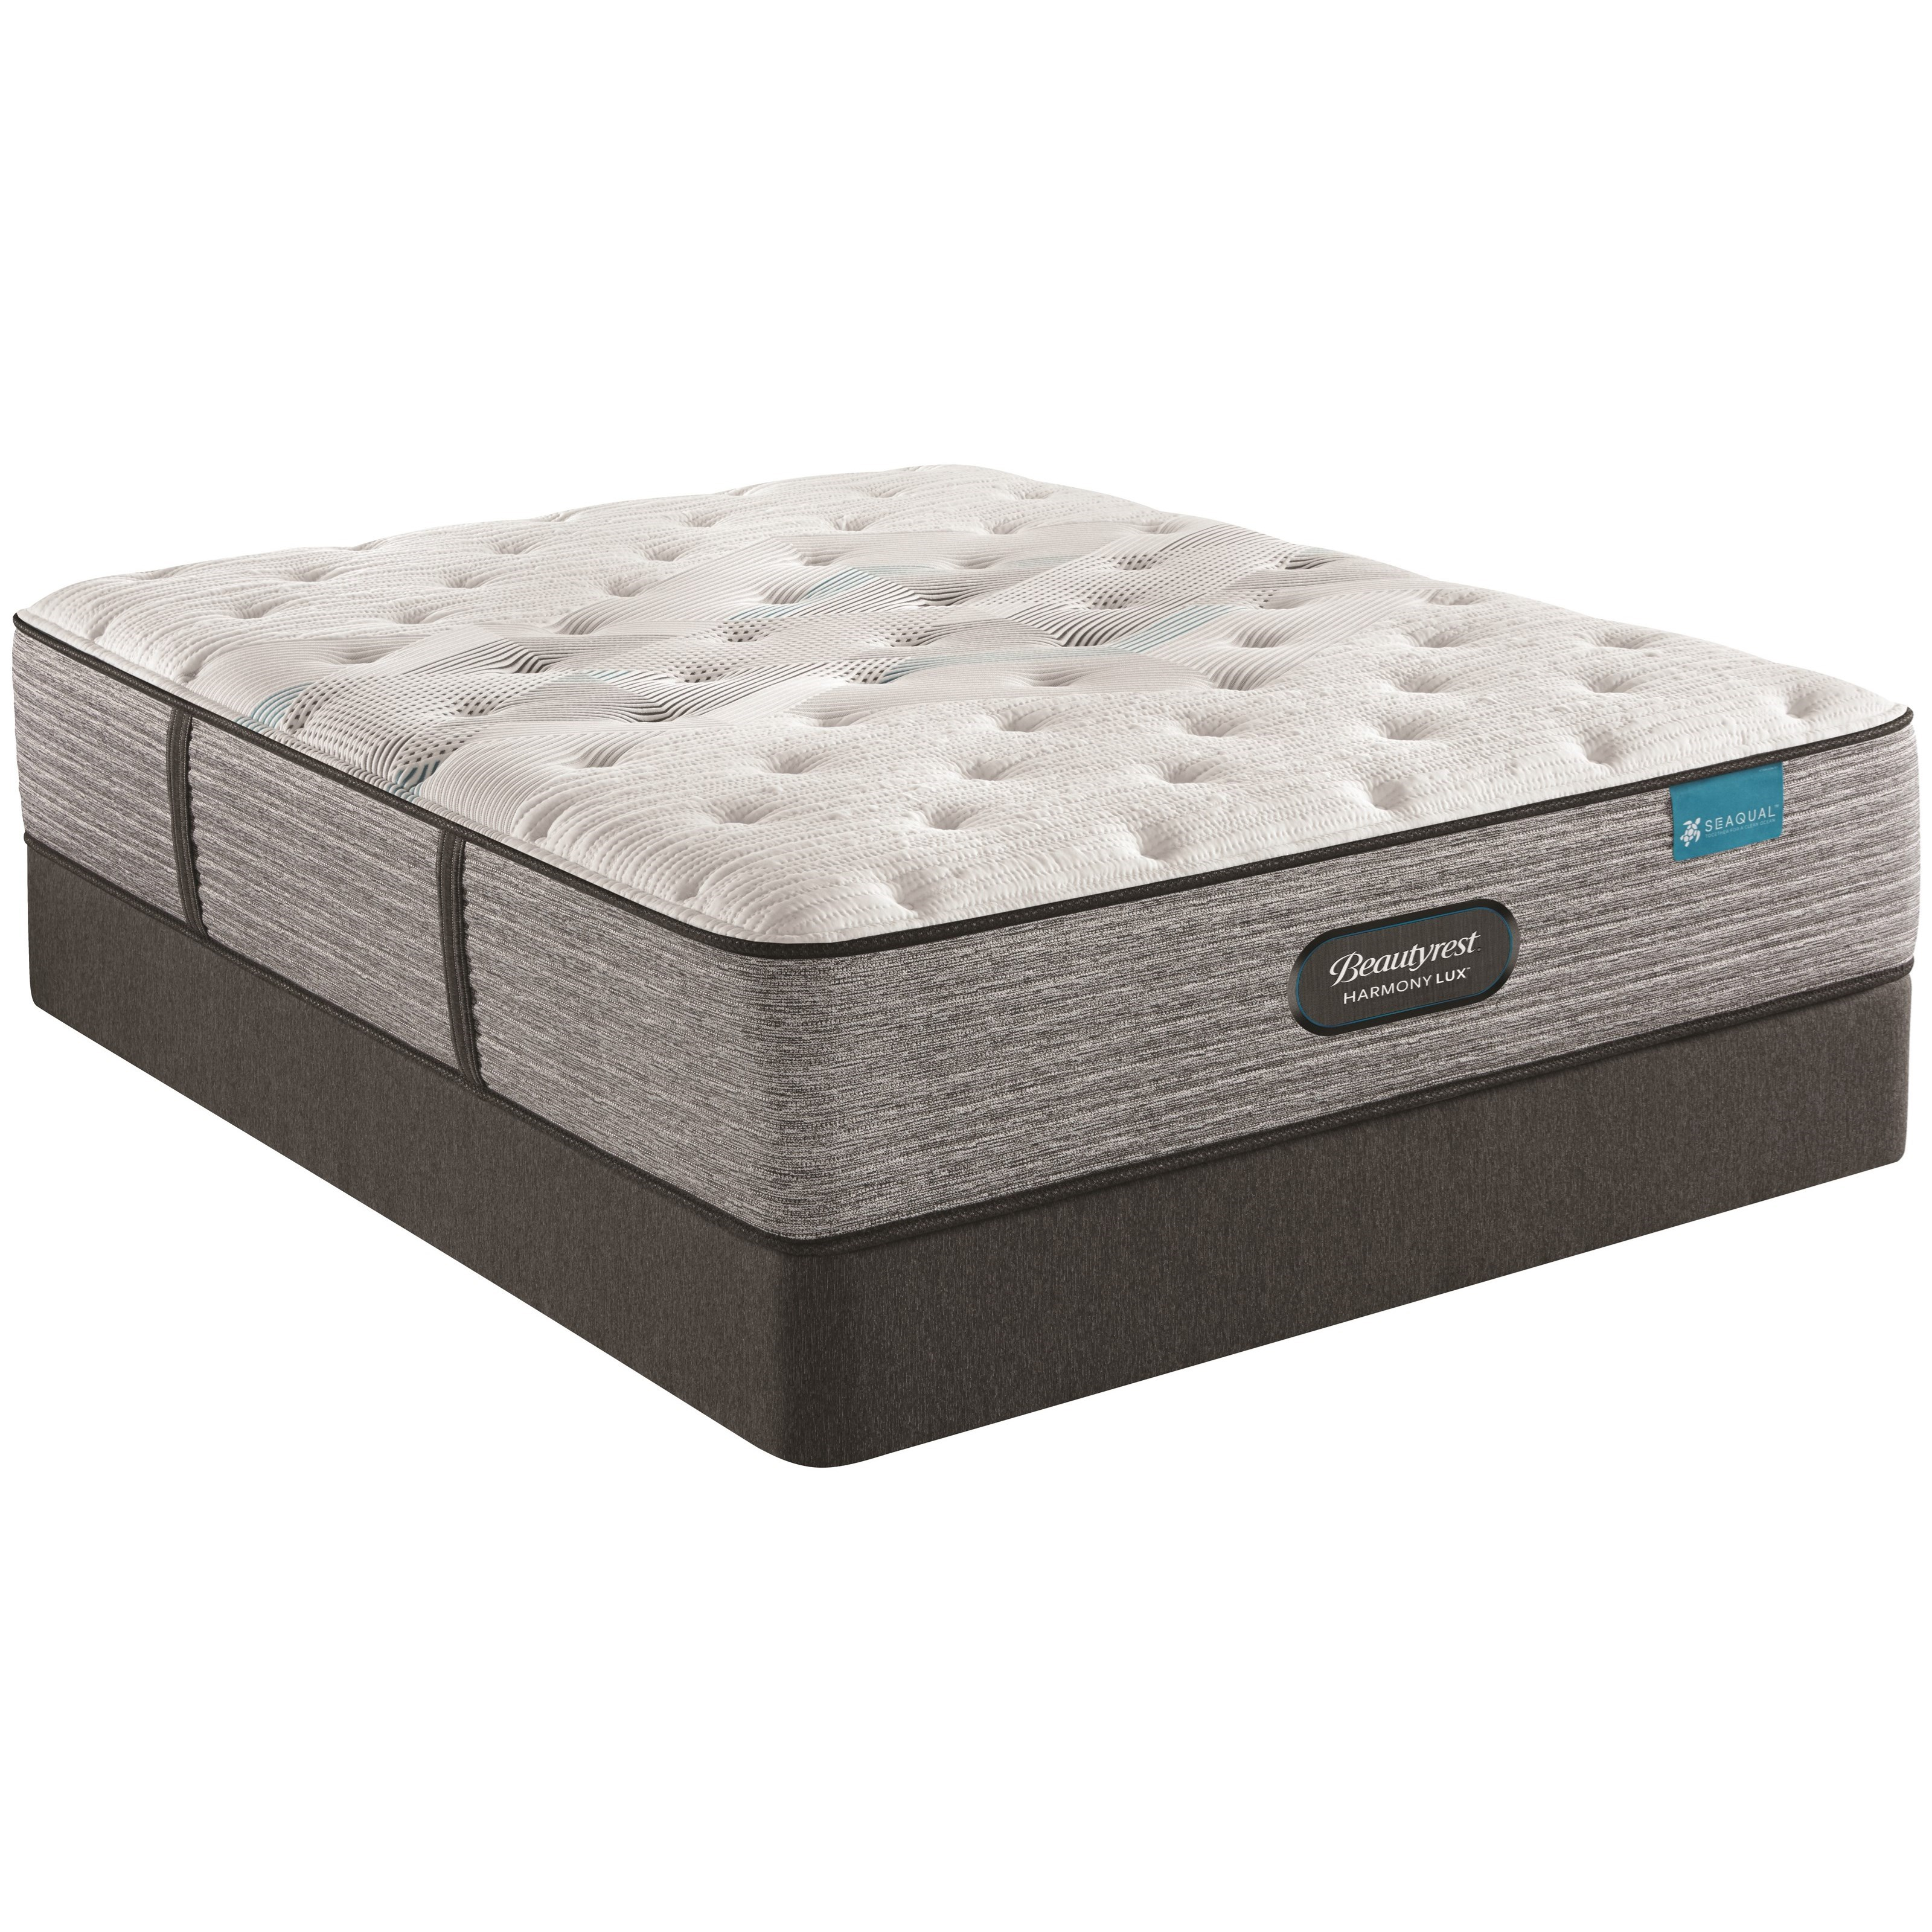 "Carbon Series Medium Twin XL 13 3/4"" Medium Firm Mattress Set by Beautyrest at Walker's Mattress"